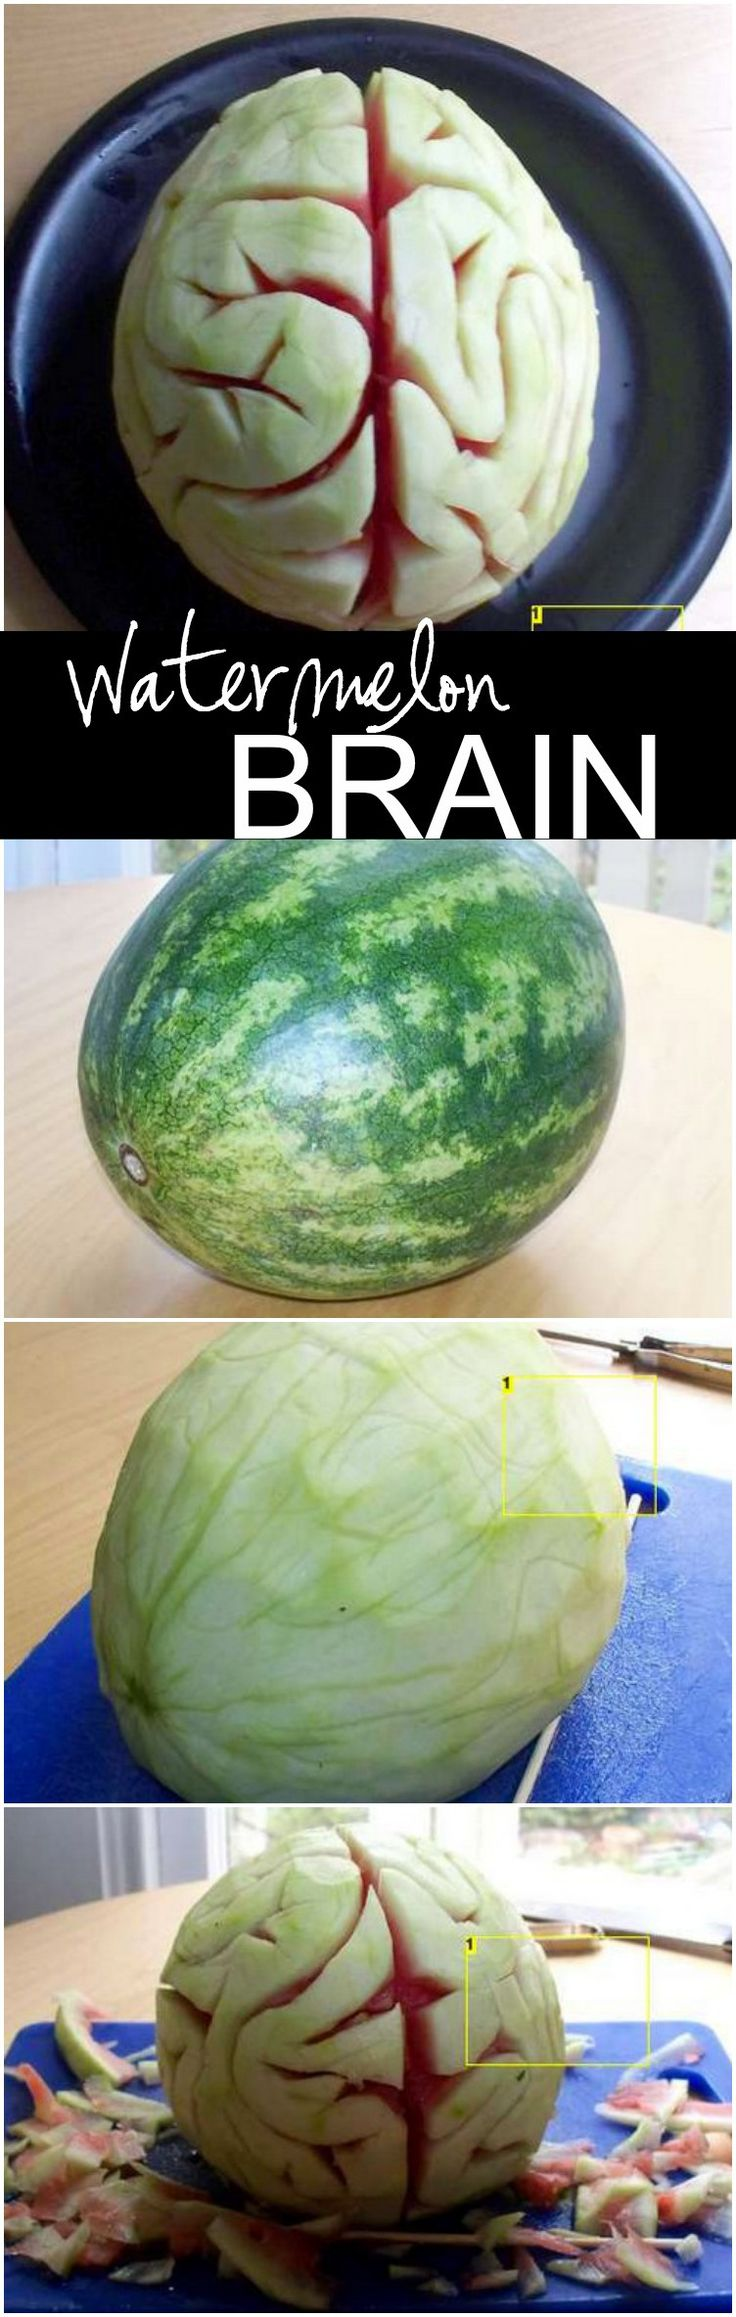 Make a Watermelon Brain for Halloween - Raining Hot Coupons